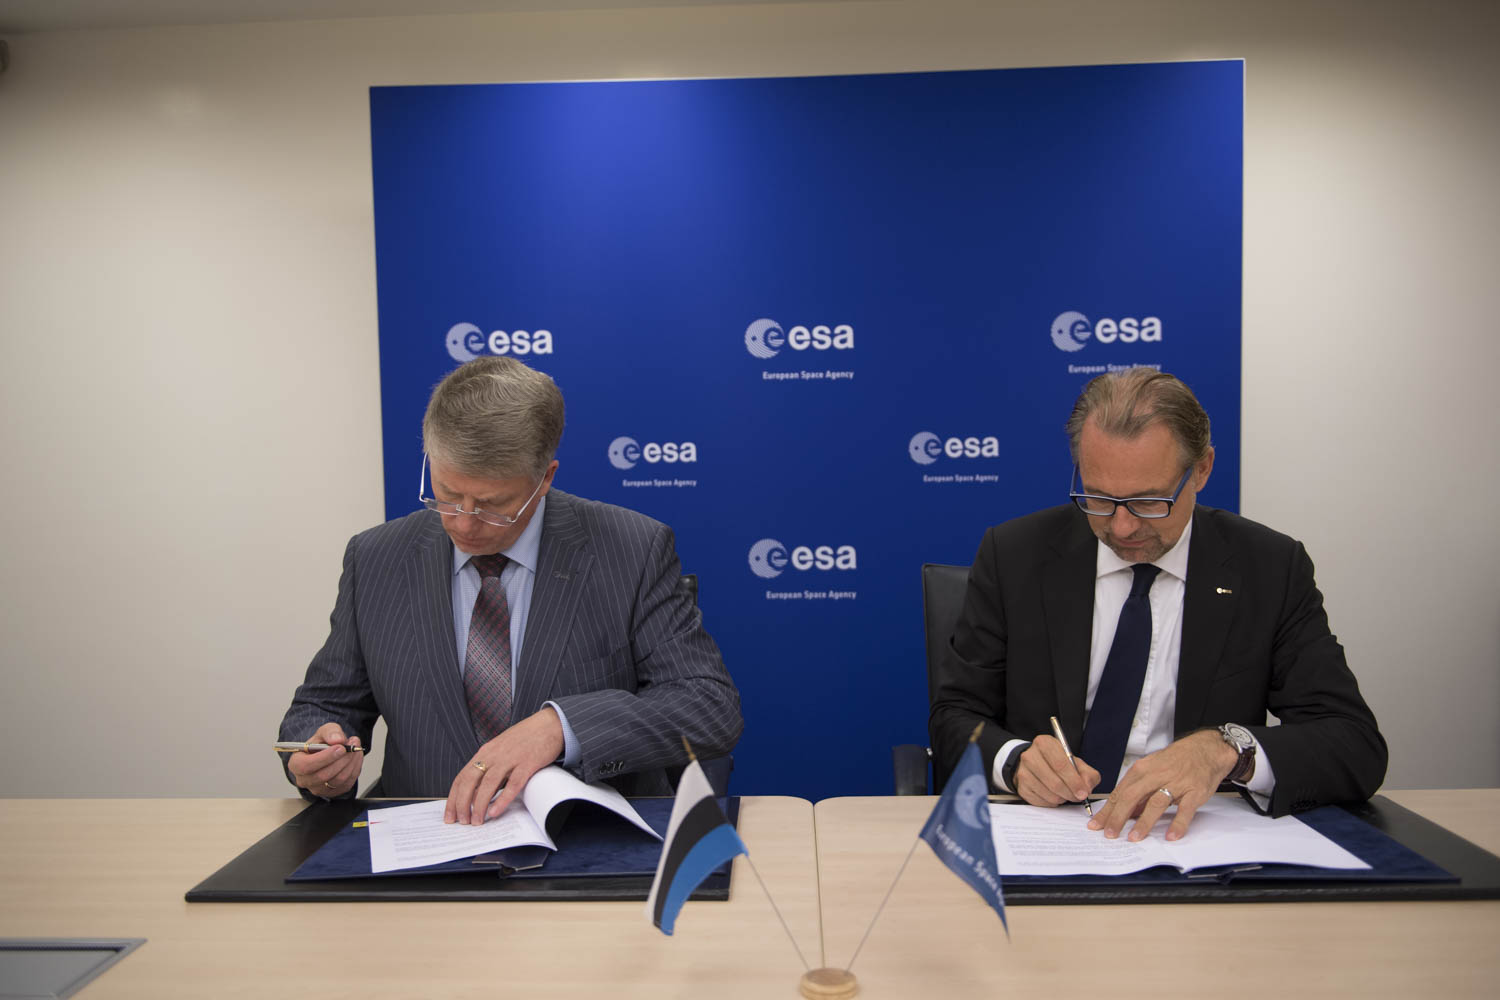 Mr. Madis Võõras, Enterprise Estonia, Head of Estonian Space Office. Head of Estonian Delegation to ESA and Josef Aschbacher Director of EOP.